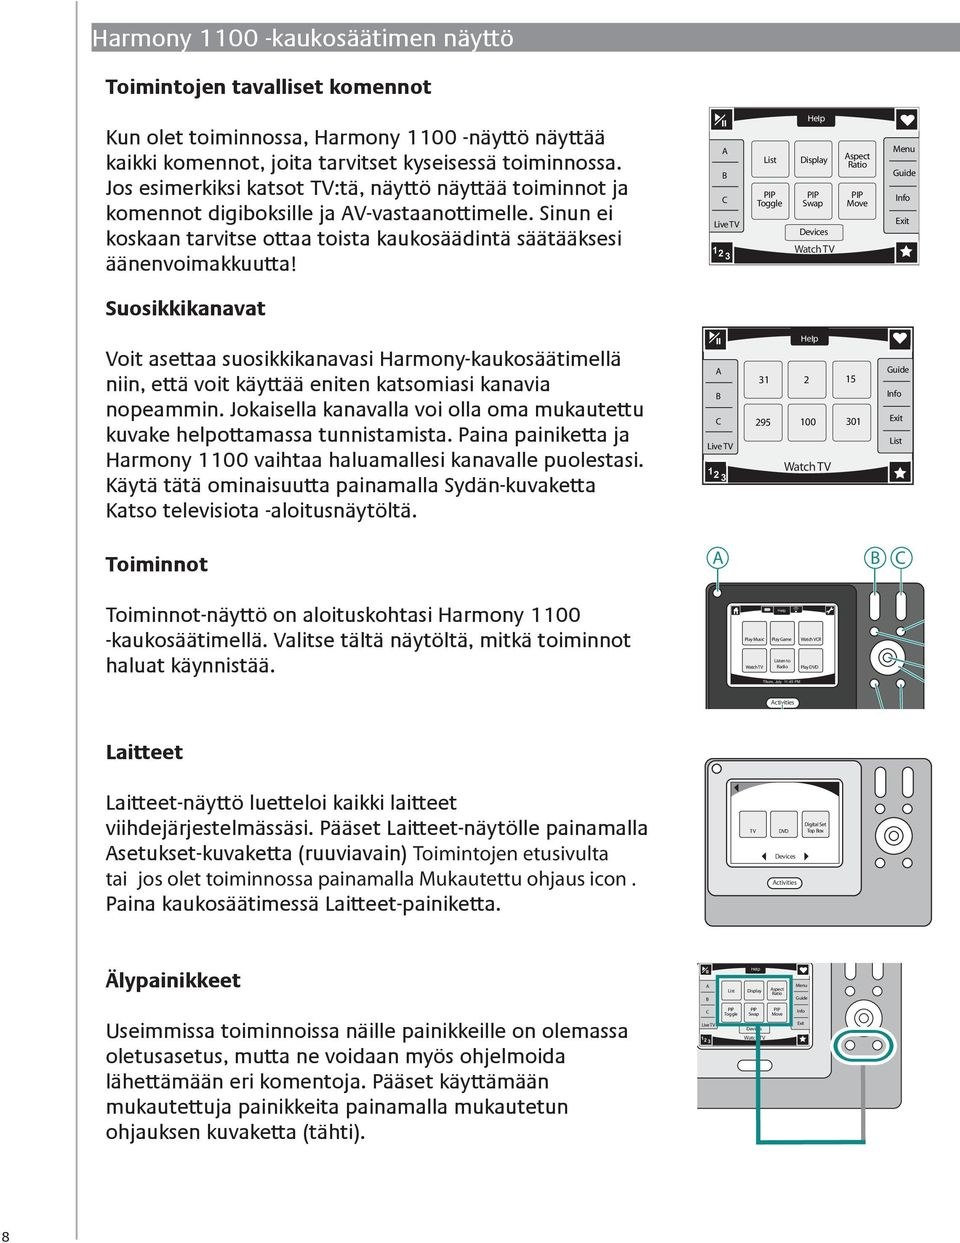 A B C Live TV 1 2 3 List PIP Toggle Help Display PIP Swap Devices Watch TV Aspect Ratio PIP Move Menu Guide Info Exit Suosikkikanavat Voit asettaa suosikkikanavasi Harmony-kaukosäätimellä niin, että